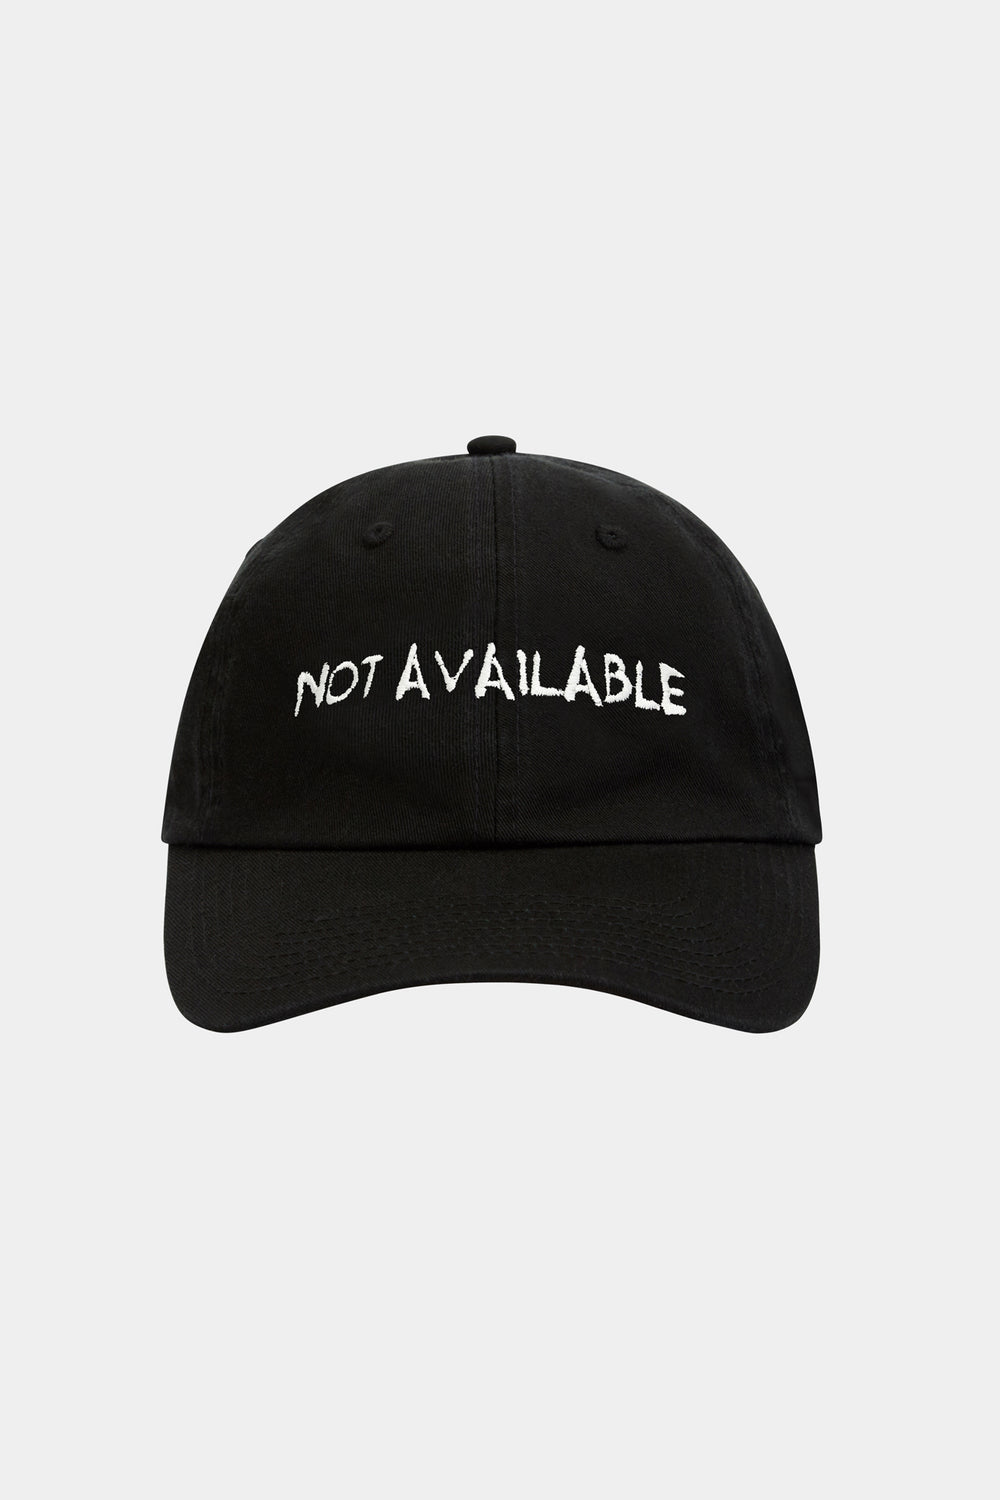 NOT AVAILABLE CAP